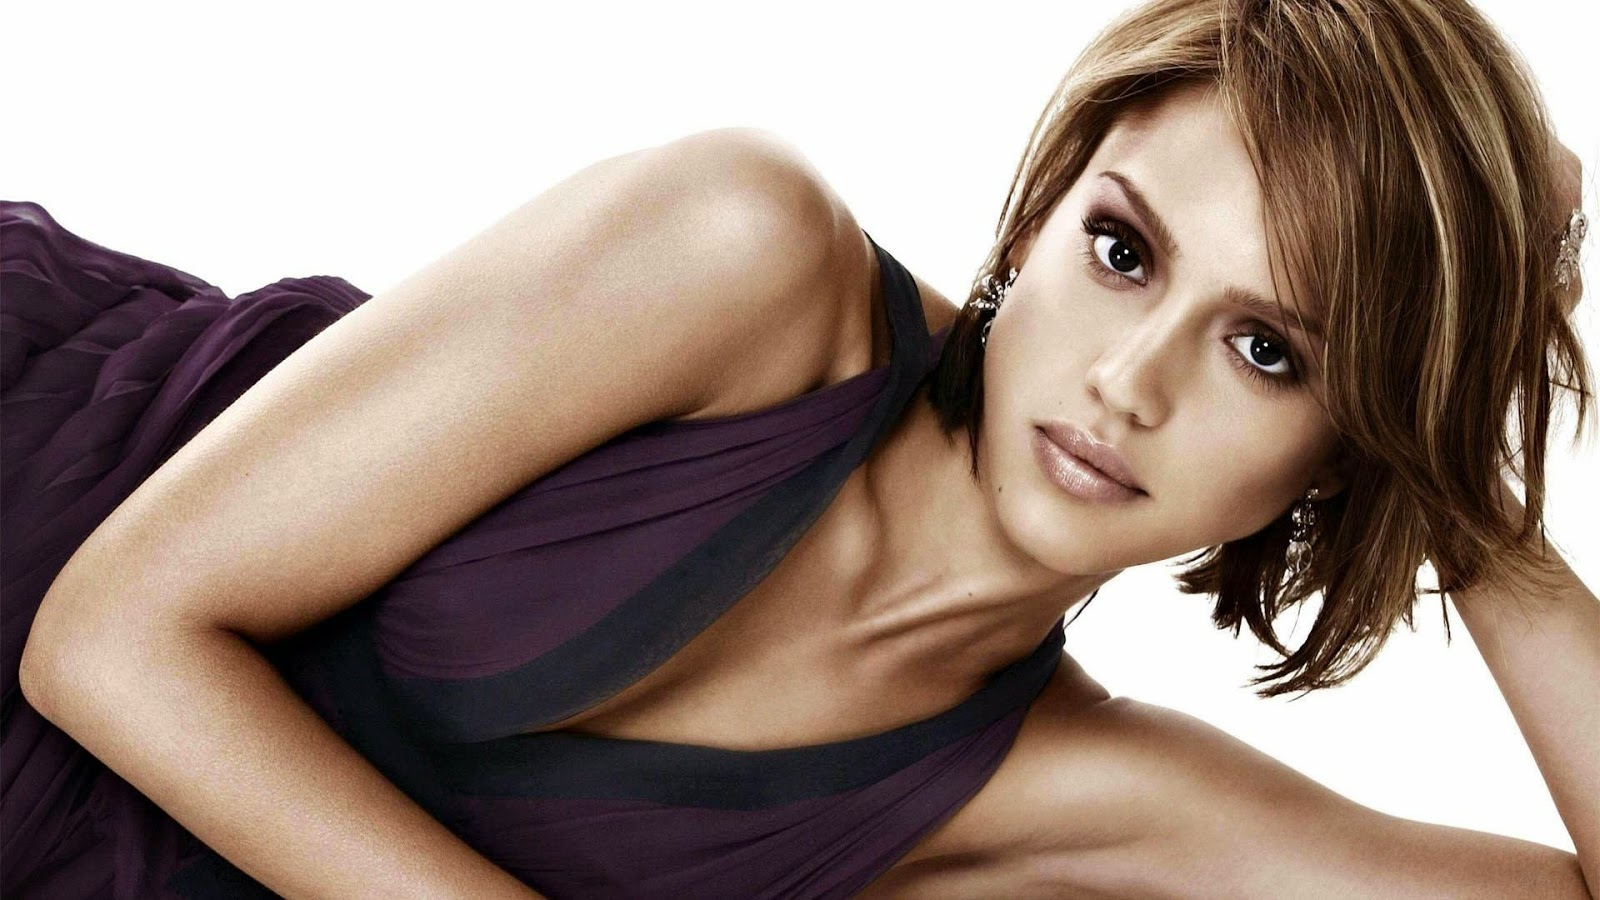 Jessica alba hollywood top 10 actress wallpaper